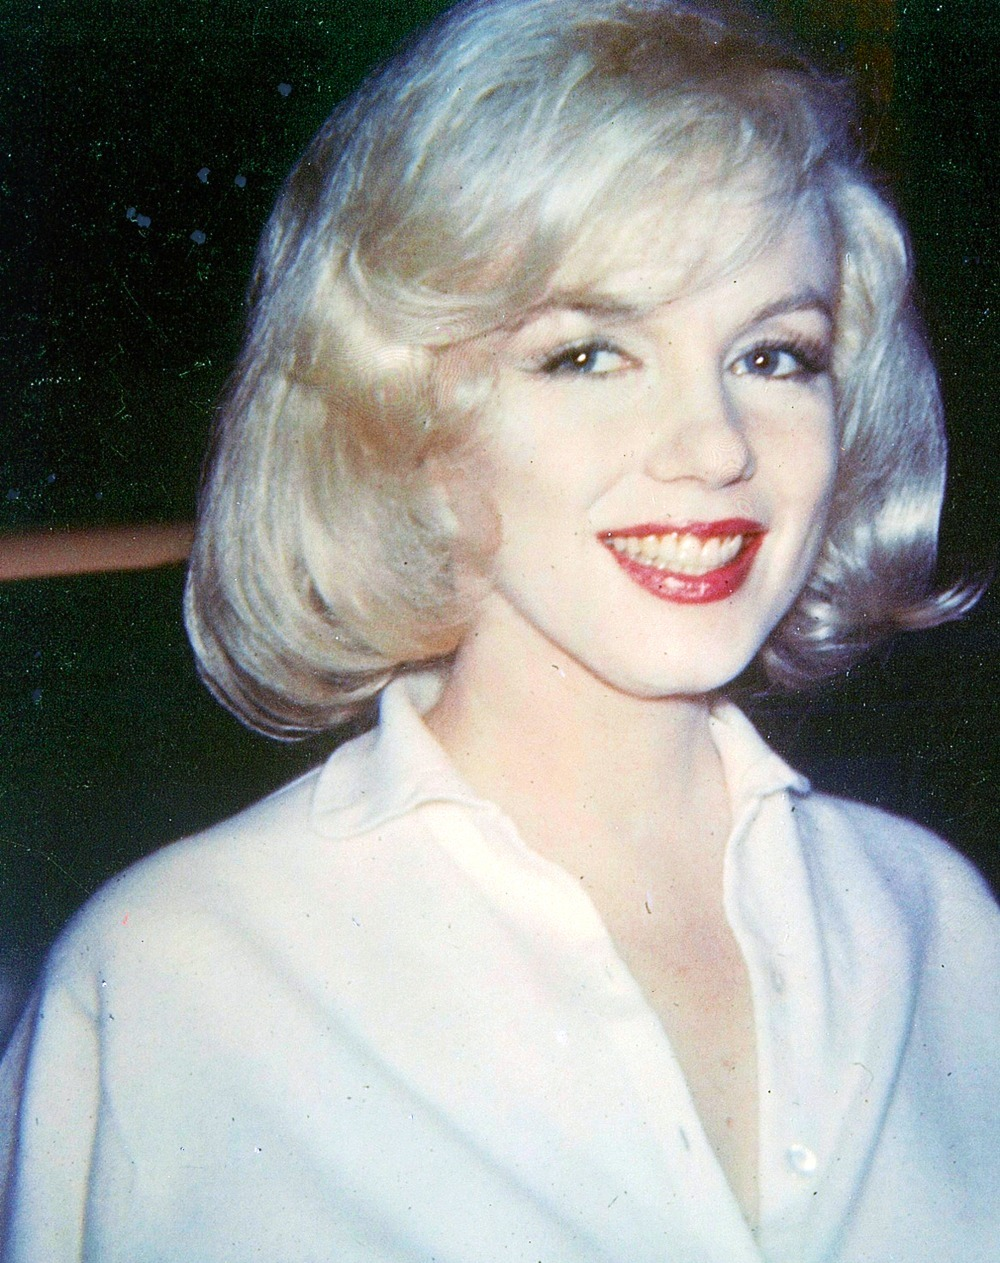 toshiromifunes:  Marilyn Monroe photographed in NYC, 1961.